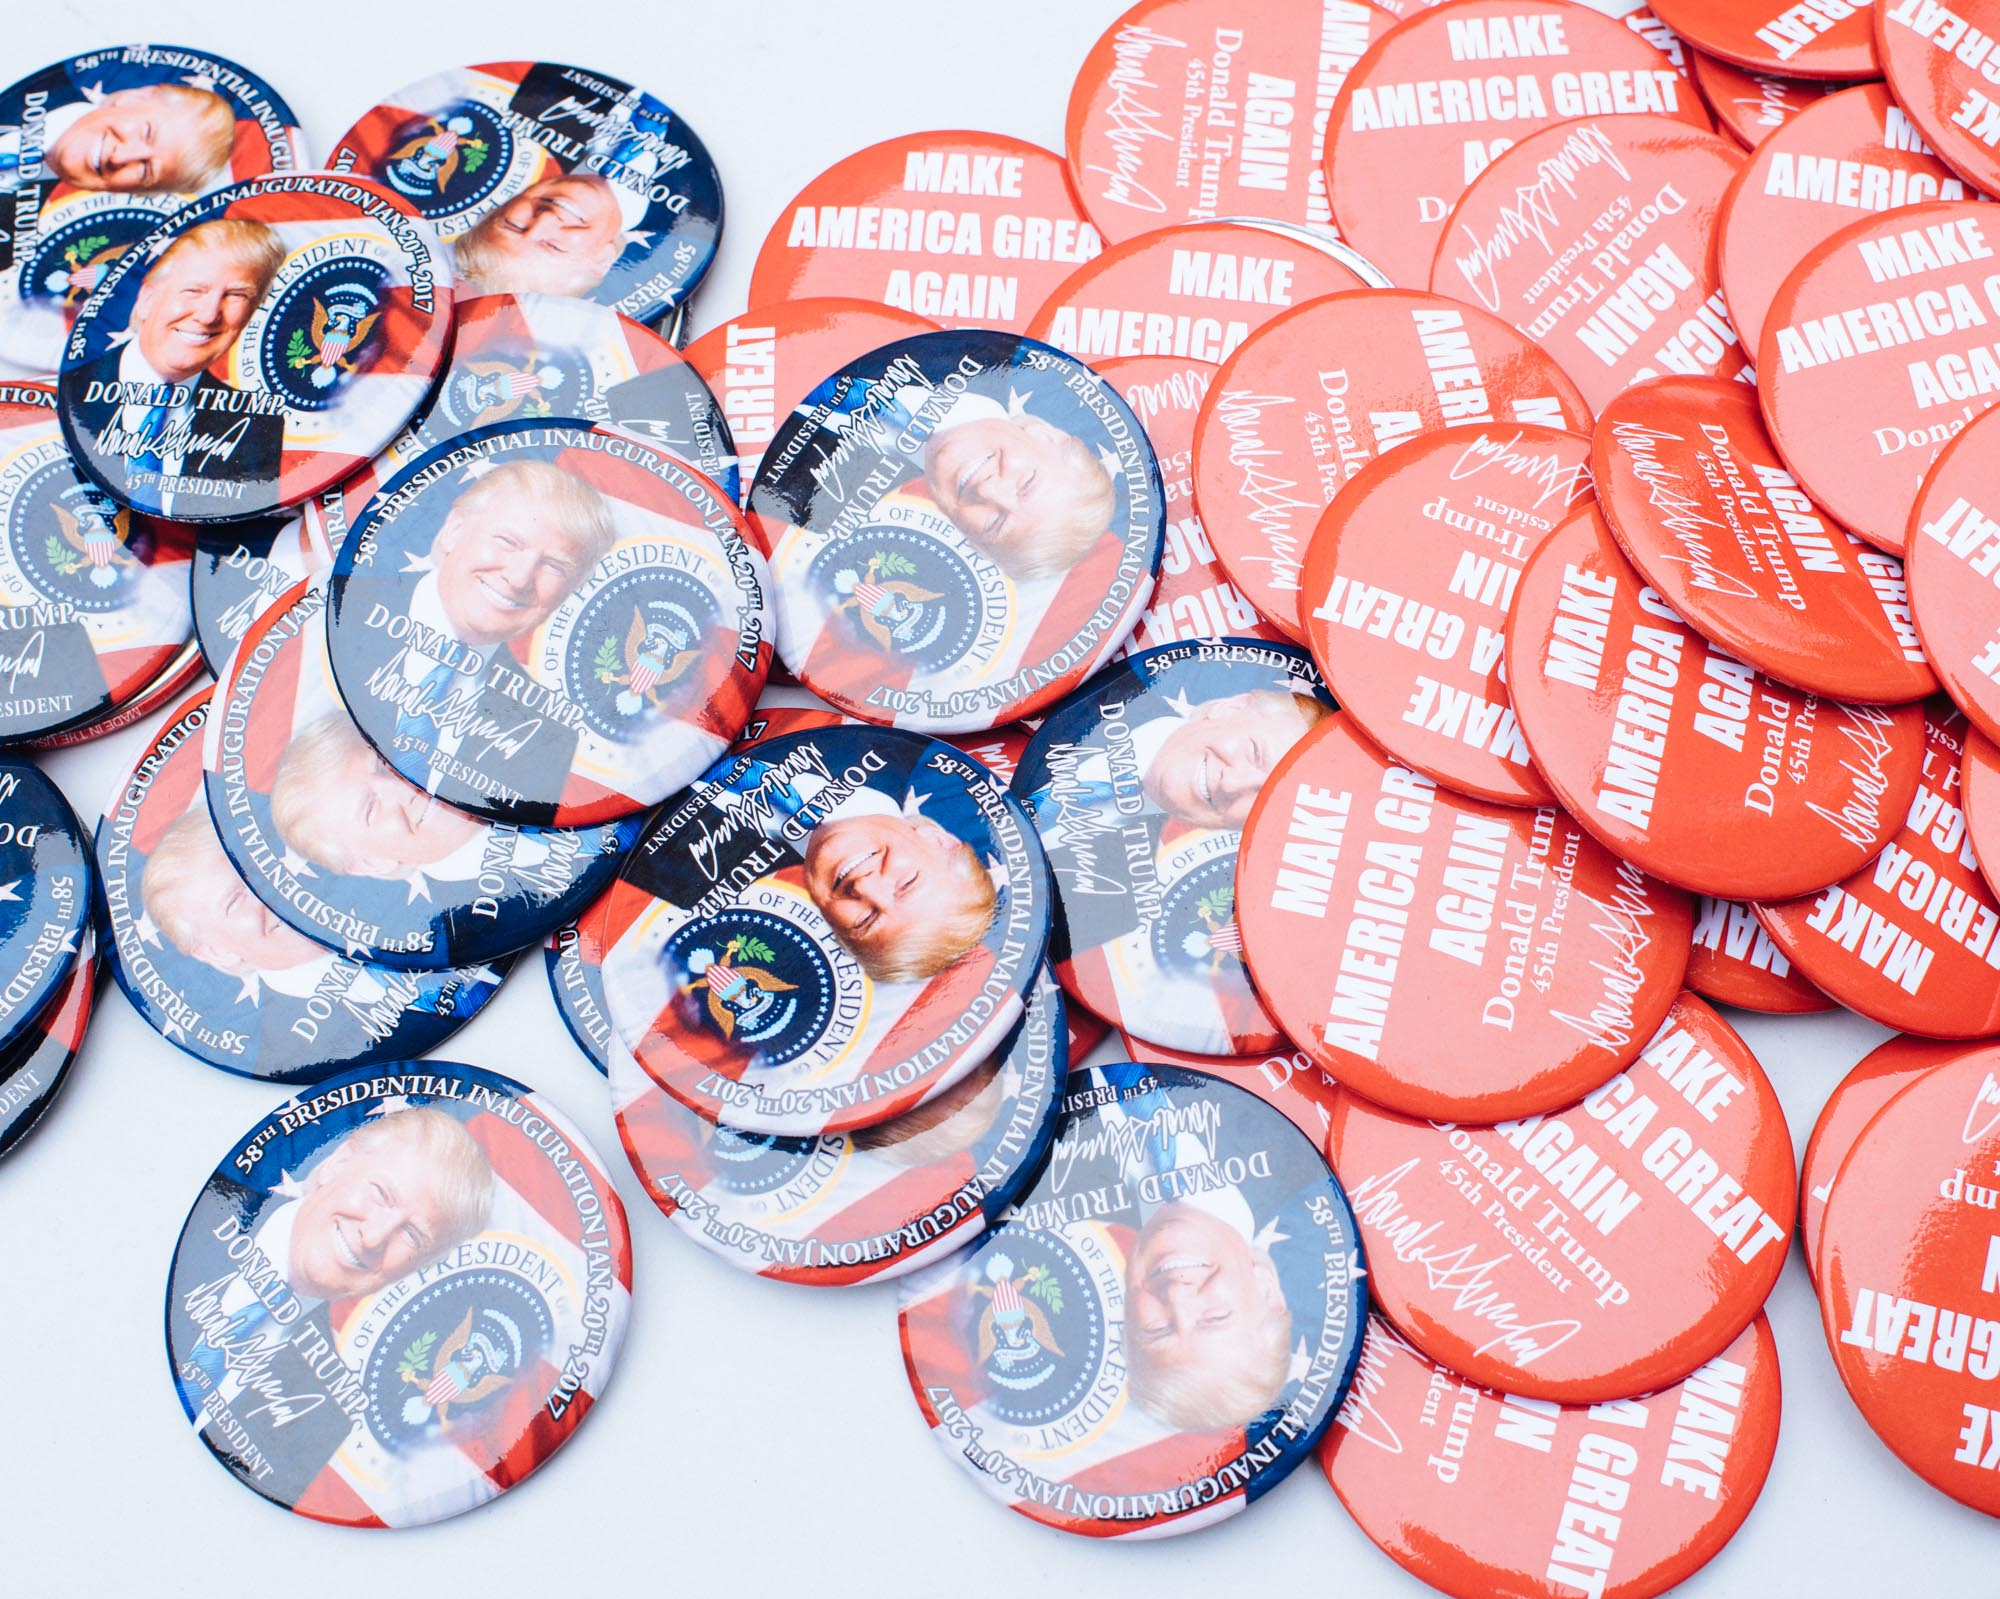 At the day after the inaugartion, street vendors sell buttons and shirts of President Trump at reduced prices.